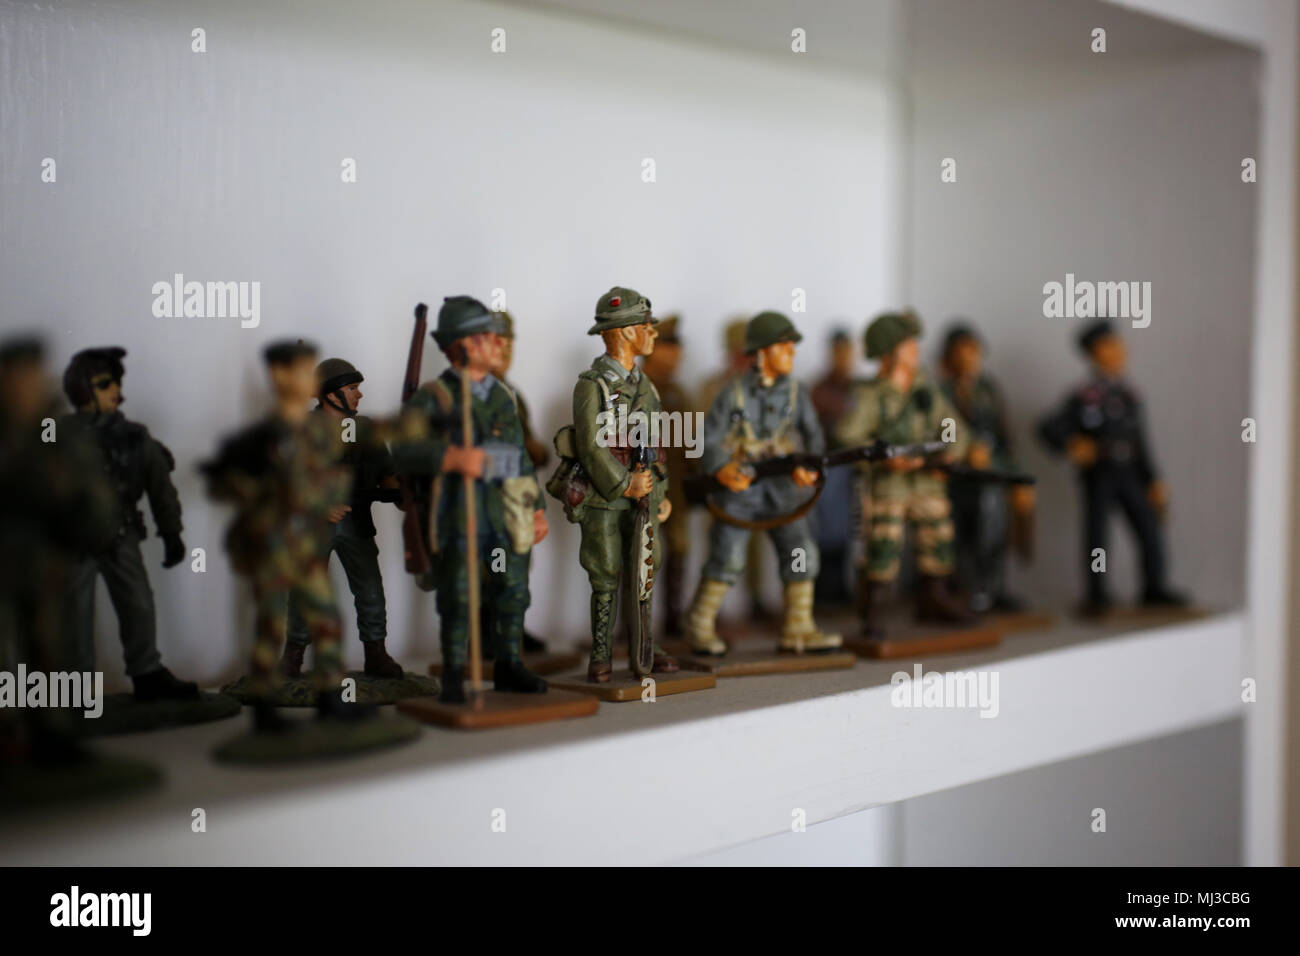 A selection of toy model soldiers pictured on a shelf in Portsmouth